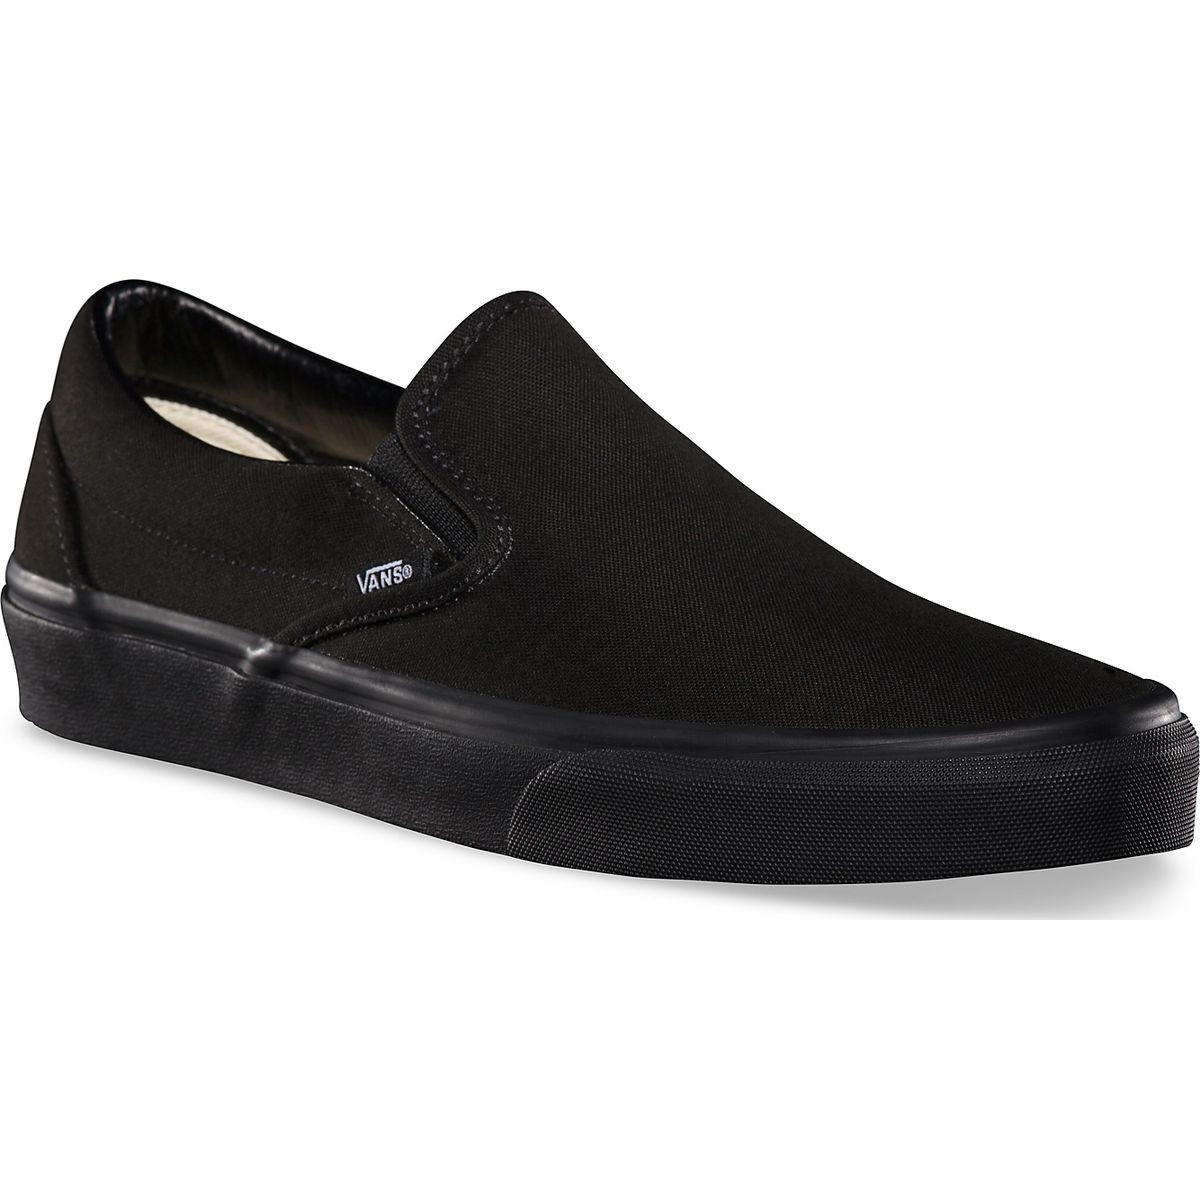 vans off the wall slip on shoes